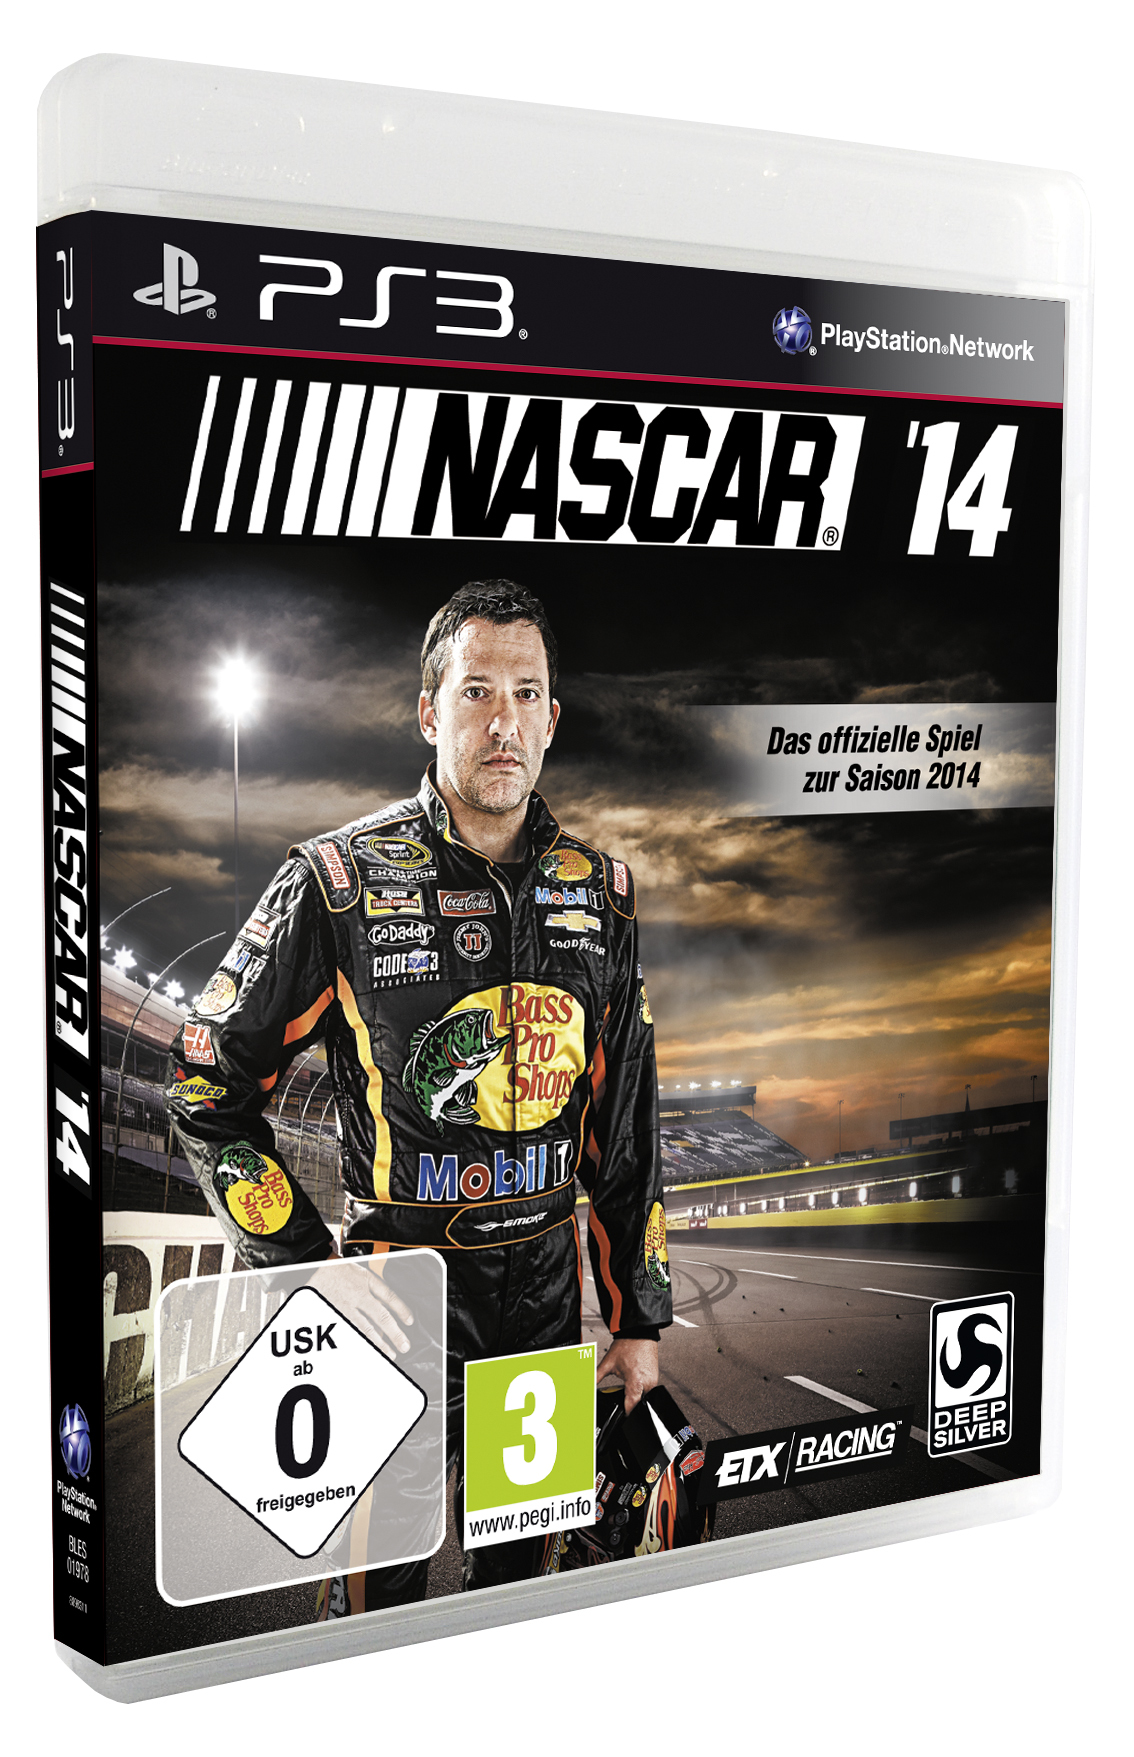 Nascar Racing Games >> NASCAR '14 | Video Game Reviews and Previews PC, PS4, Xbox One and mobile